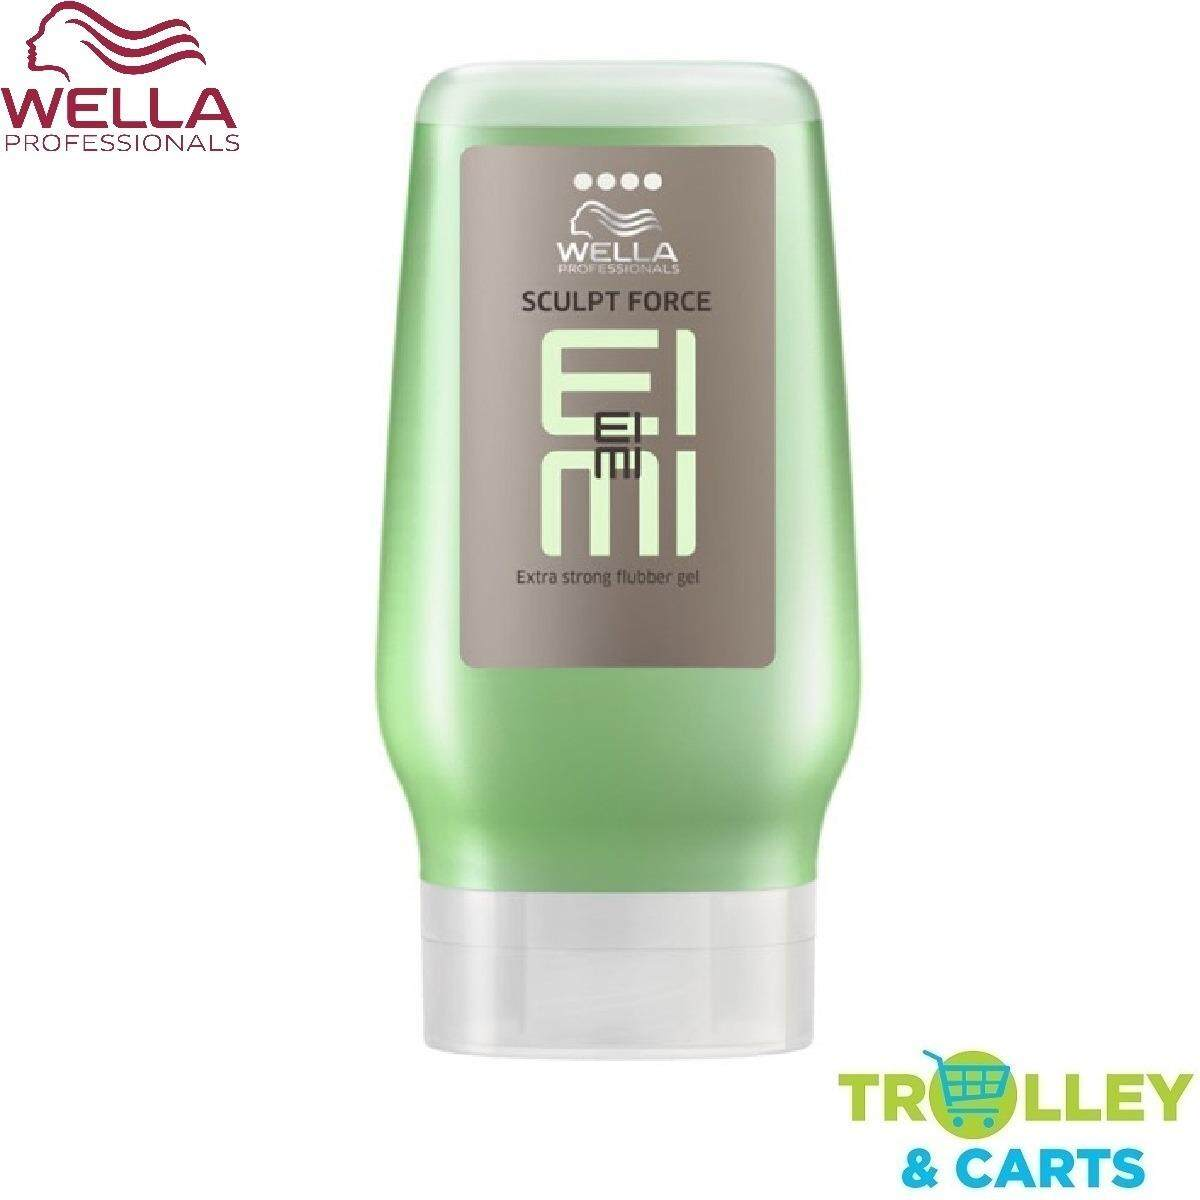 Great Wella Hair Care Products for the Best Prices in Malaysia